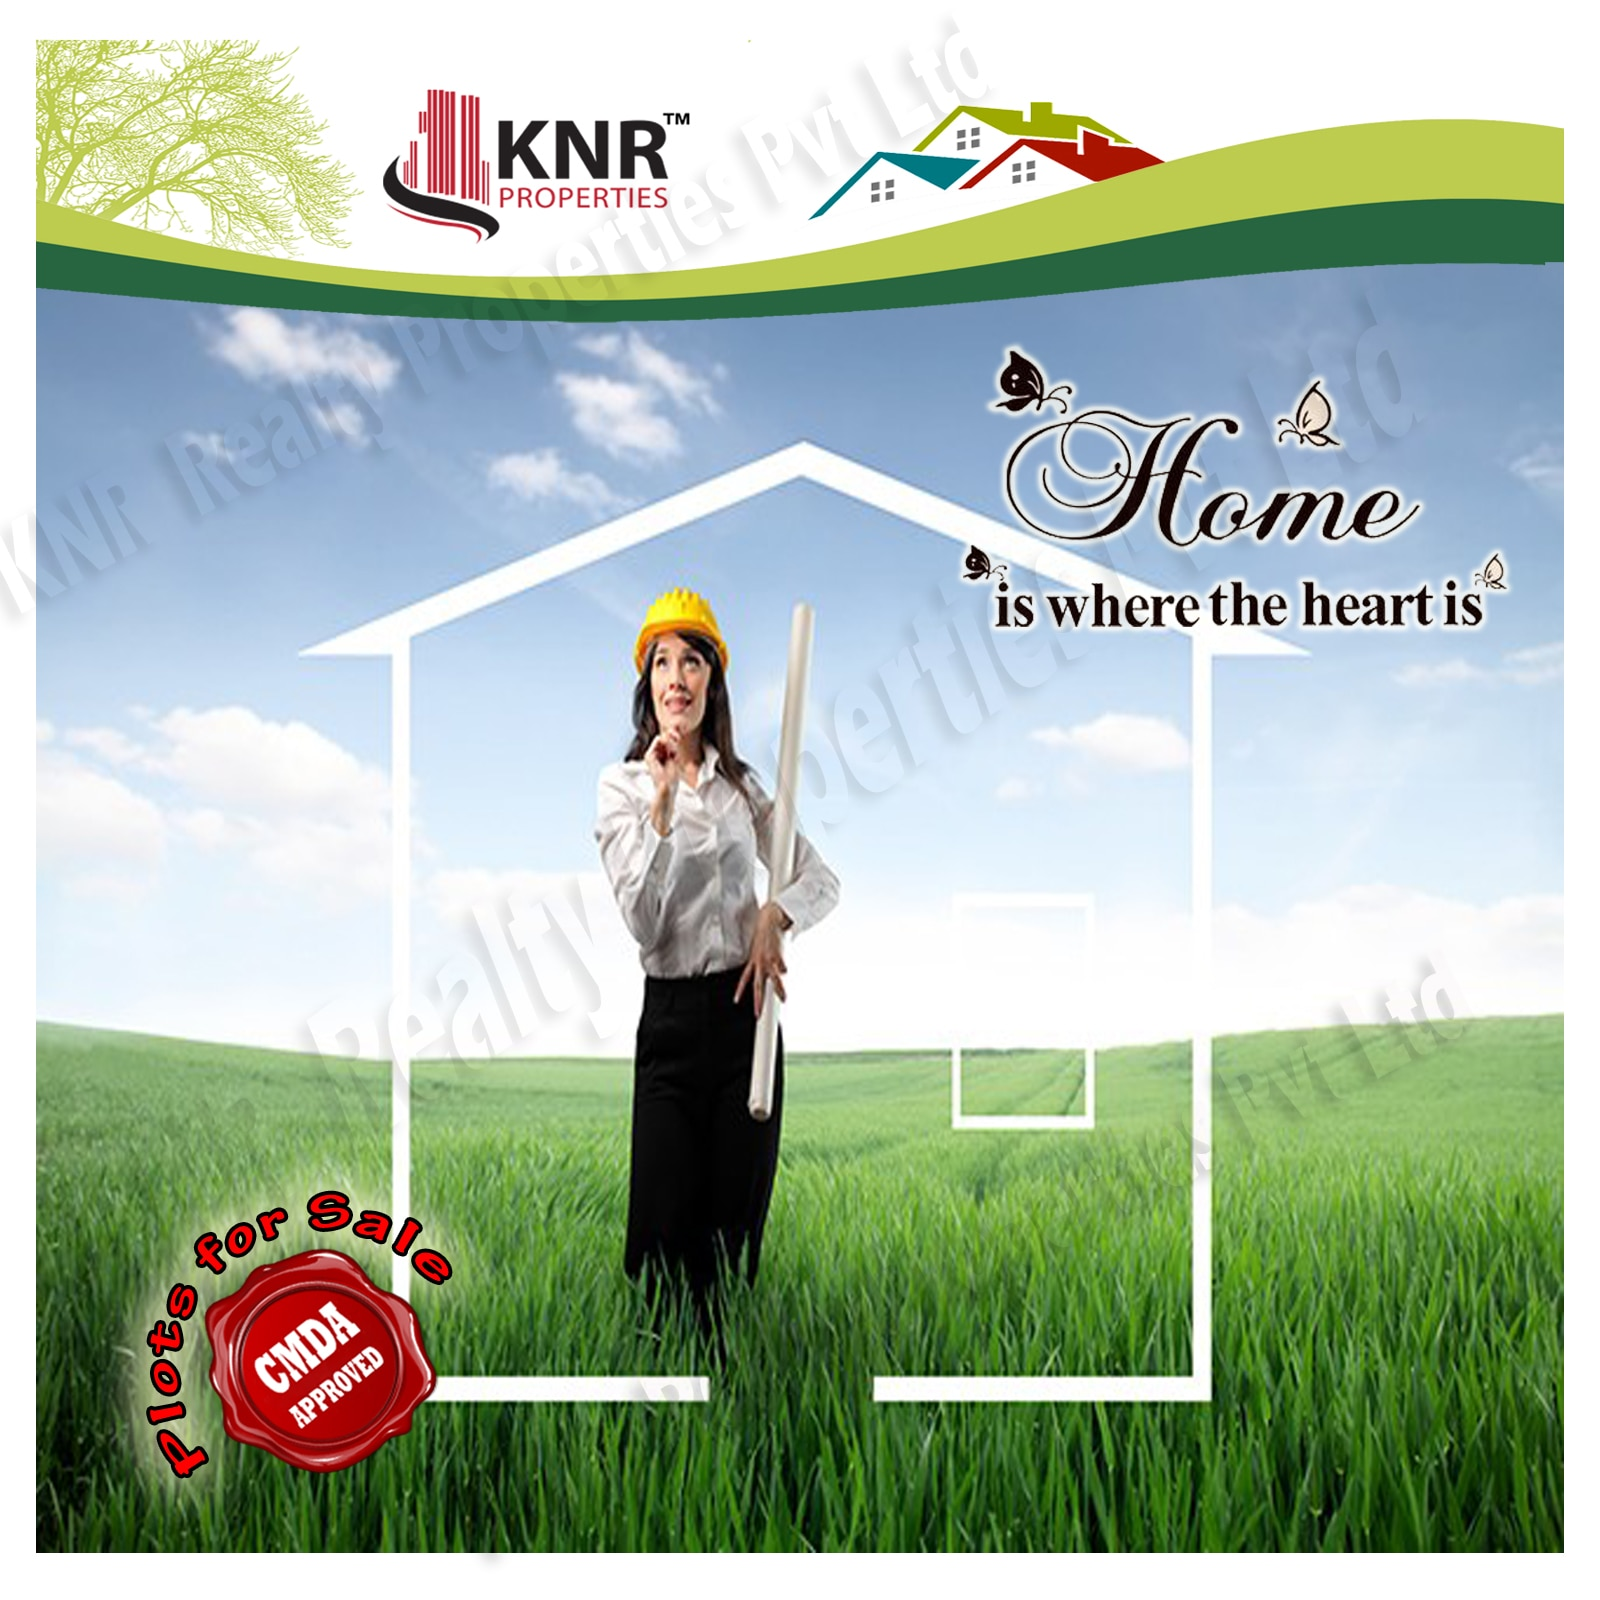 KNR Properties, the Best Real Estate Agent in Chennai offers CMDA Approved Plots For Sale in Poonamallee and Mangadu.  Thillai Nataraja Nagar, CMDA Approved Plots for Sale in Mangadu Golden City and Navasakthi nagar, CMDA Approved Plots for Sale in Meppur Sri Sai Nagar Phase I, II, III, within CMDA limit Plots for sale at Meppur. Sri Lakshmi Devi Nagar, within CMDA limit Plots for sale at Agaramel. for more details visit http://knrproperties.com/